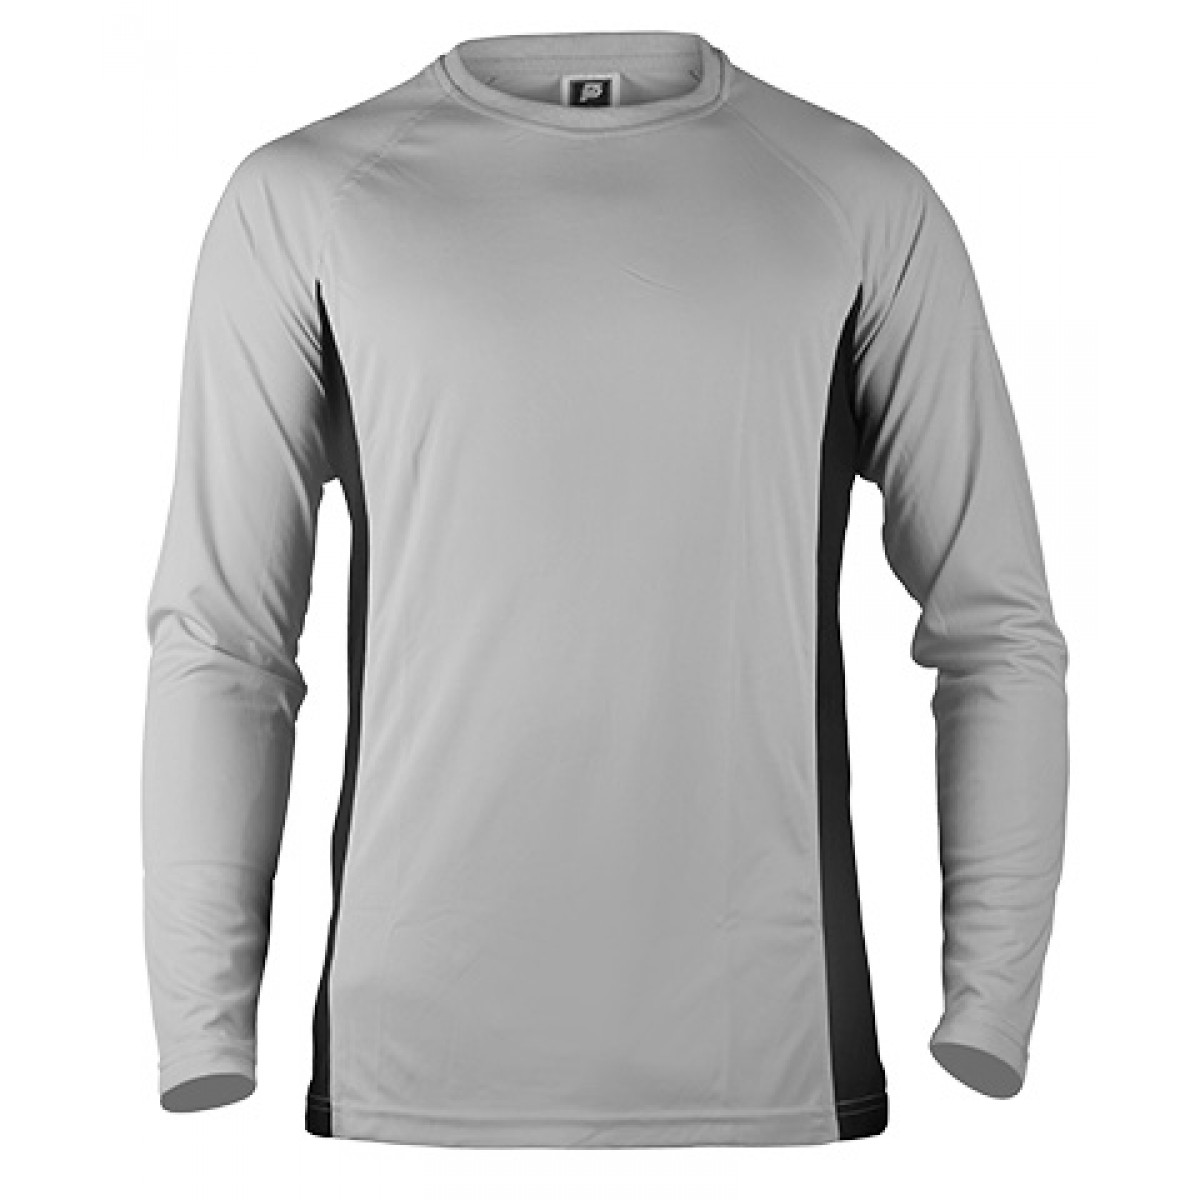 Long Sleeves Performance With Side Insert-Gray/Black-L